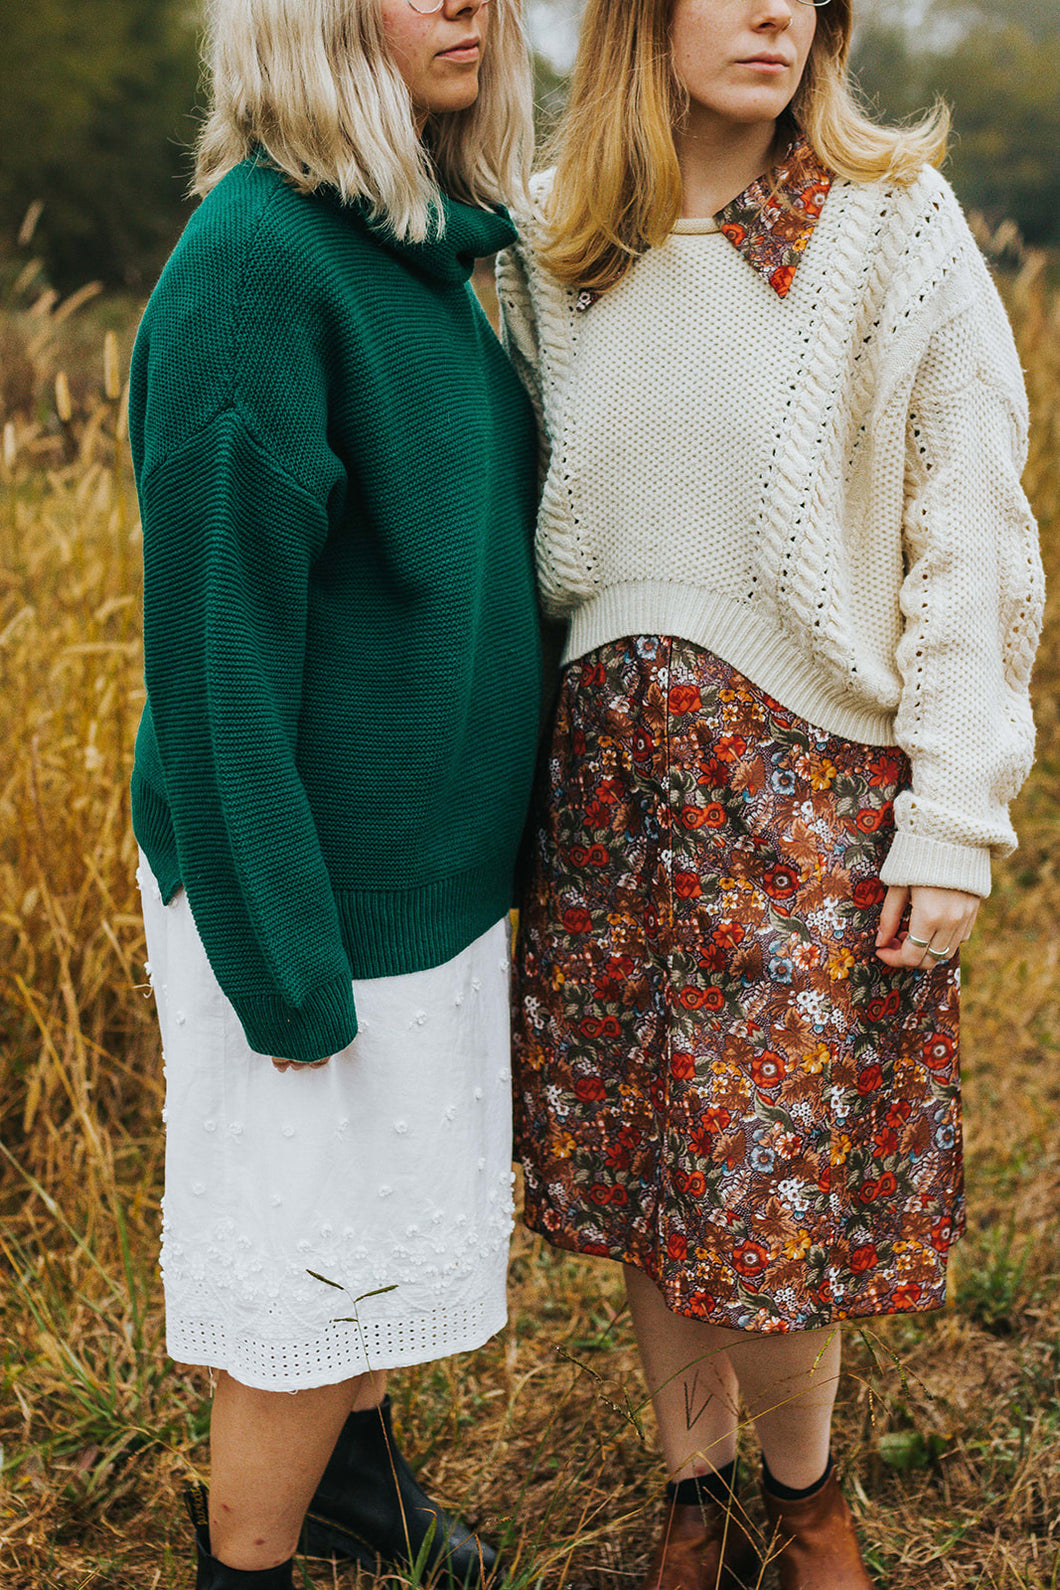 Granny Smith: A Cream Oversized Semi-Cropped Knit Sweater